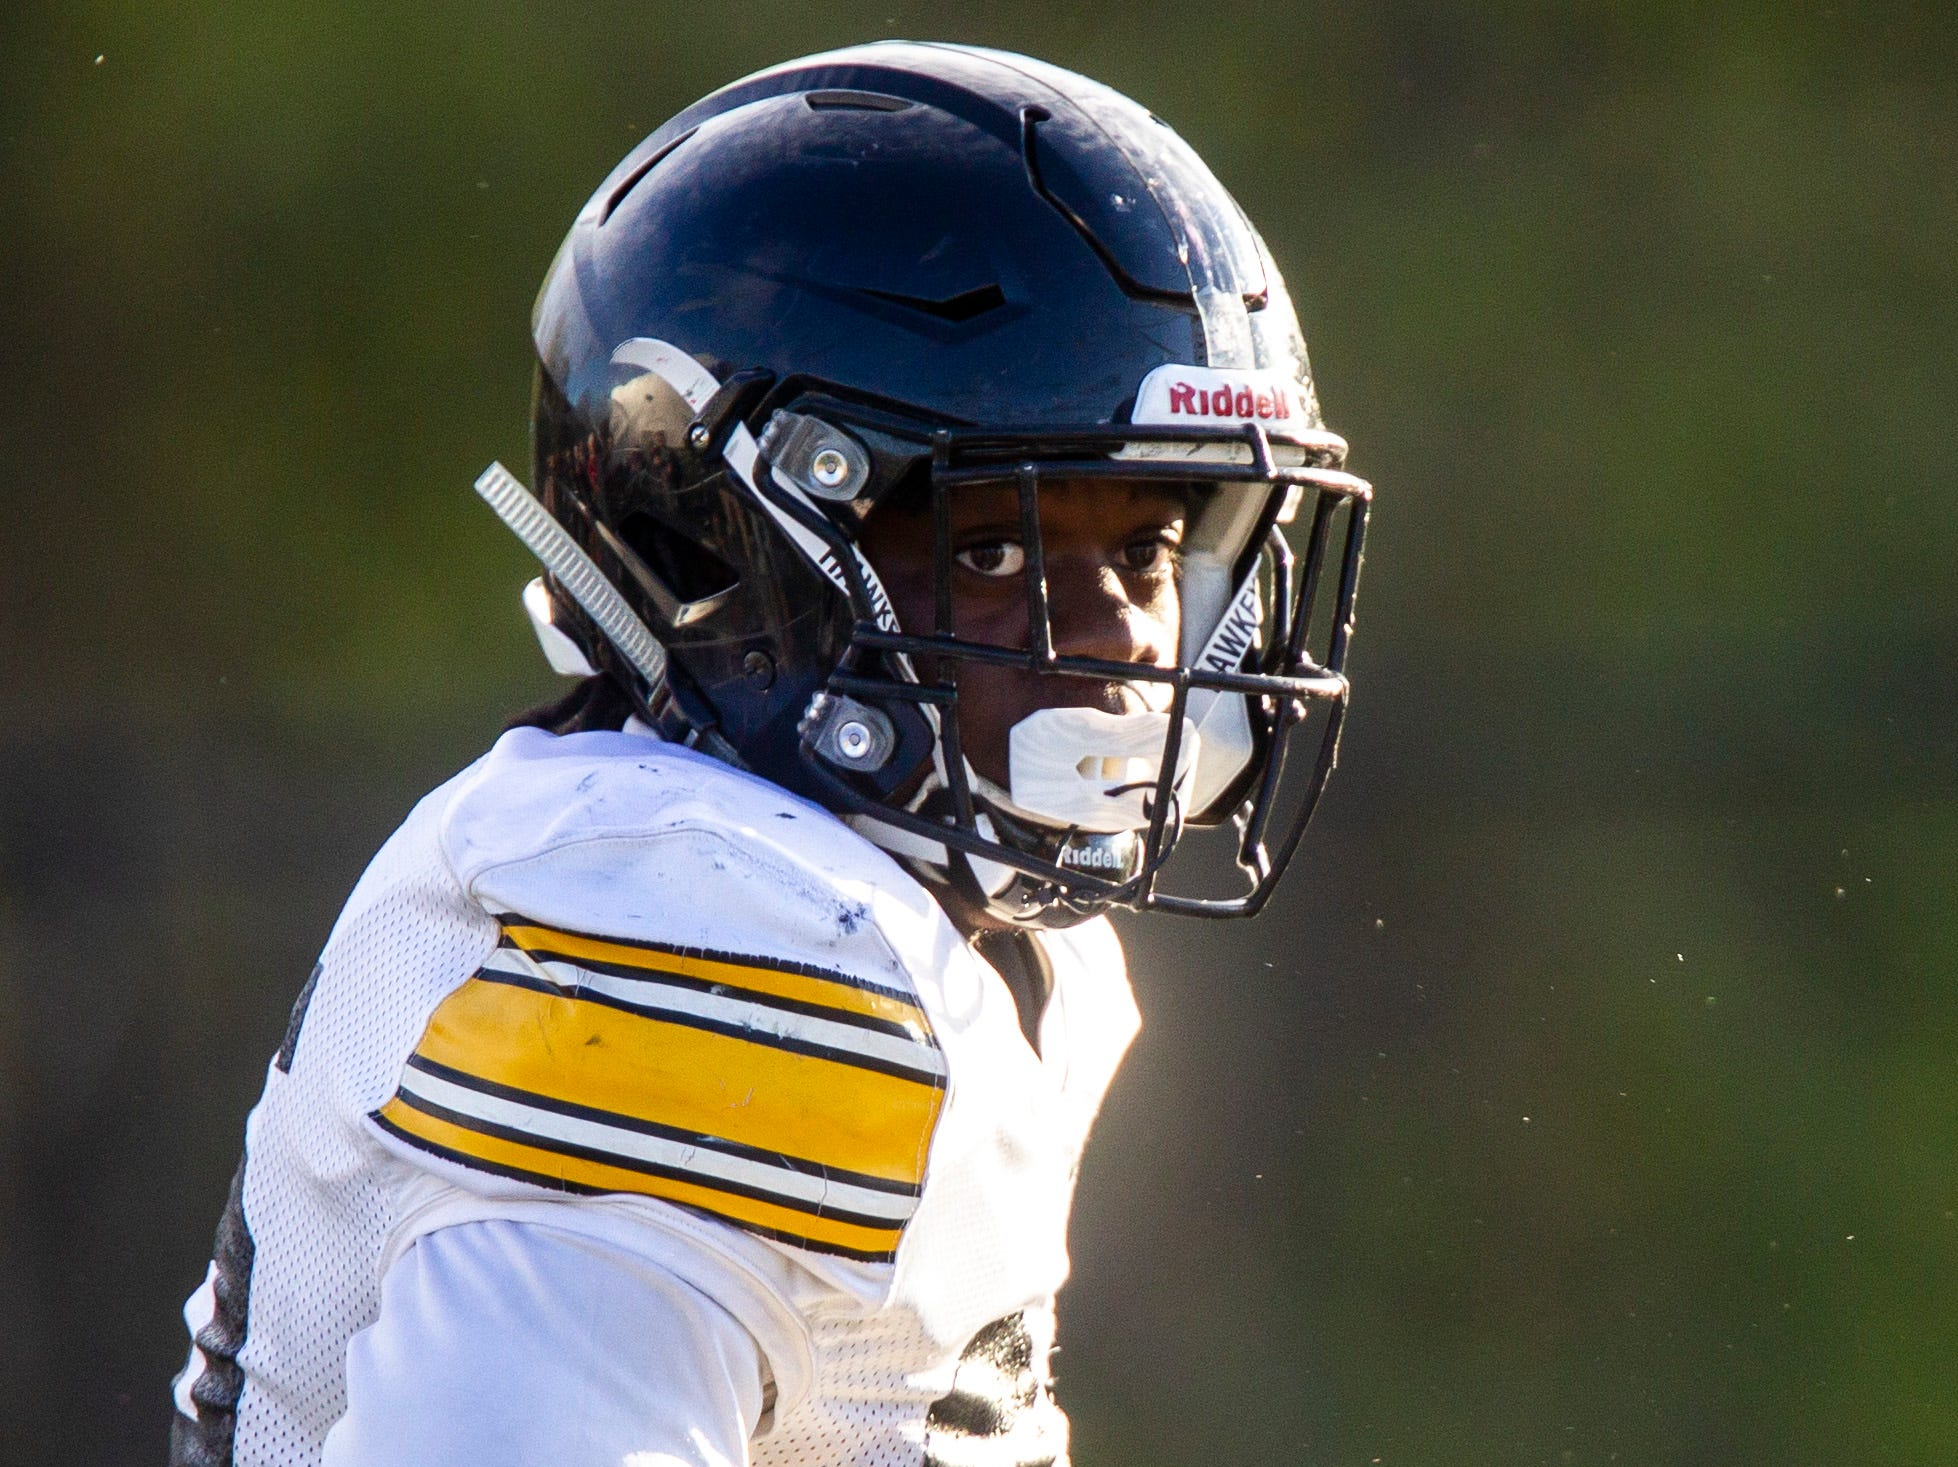 Iowa linebacker Jayden McDonald (25) is pictured during the final spring football practice, Friday, April 26, 2019, at the University of Iowa outdoor practice facility in Iowa City, Iowa.